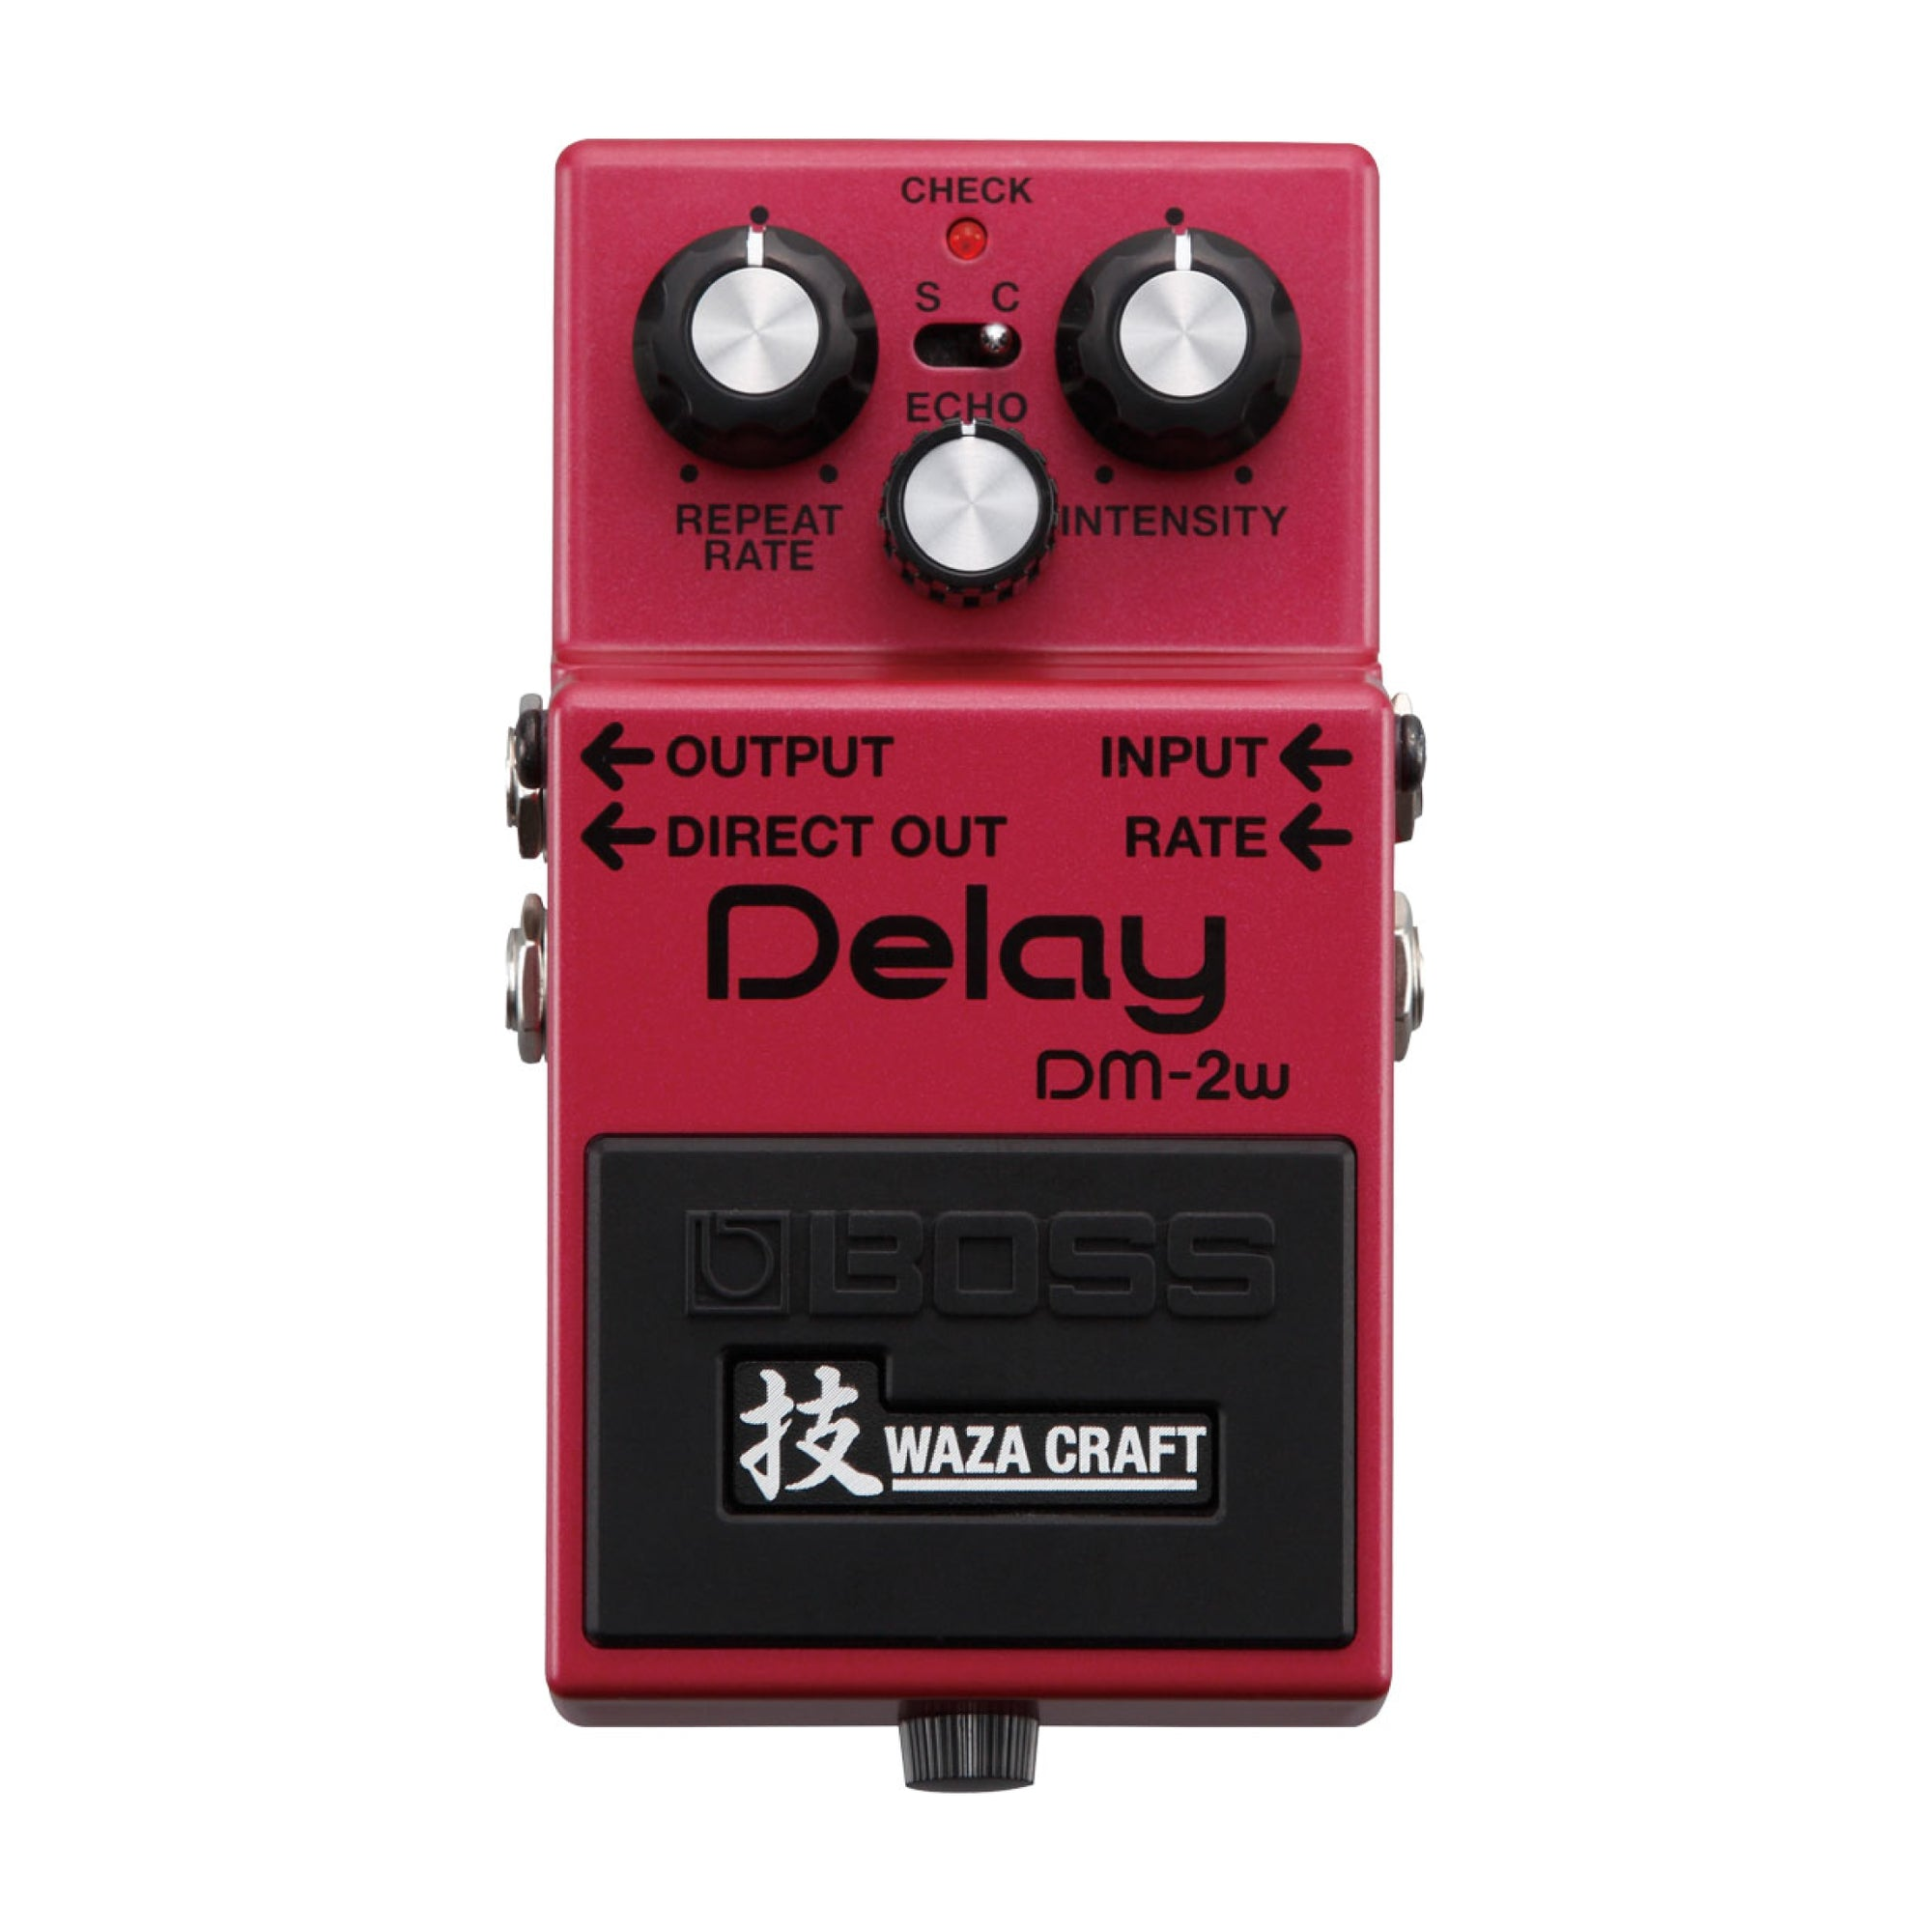 BOSS DM-2w Delay - Waza Craft